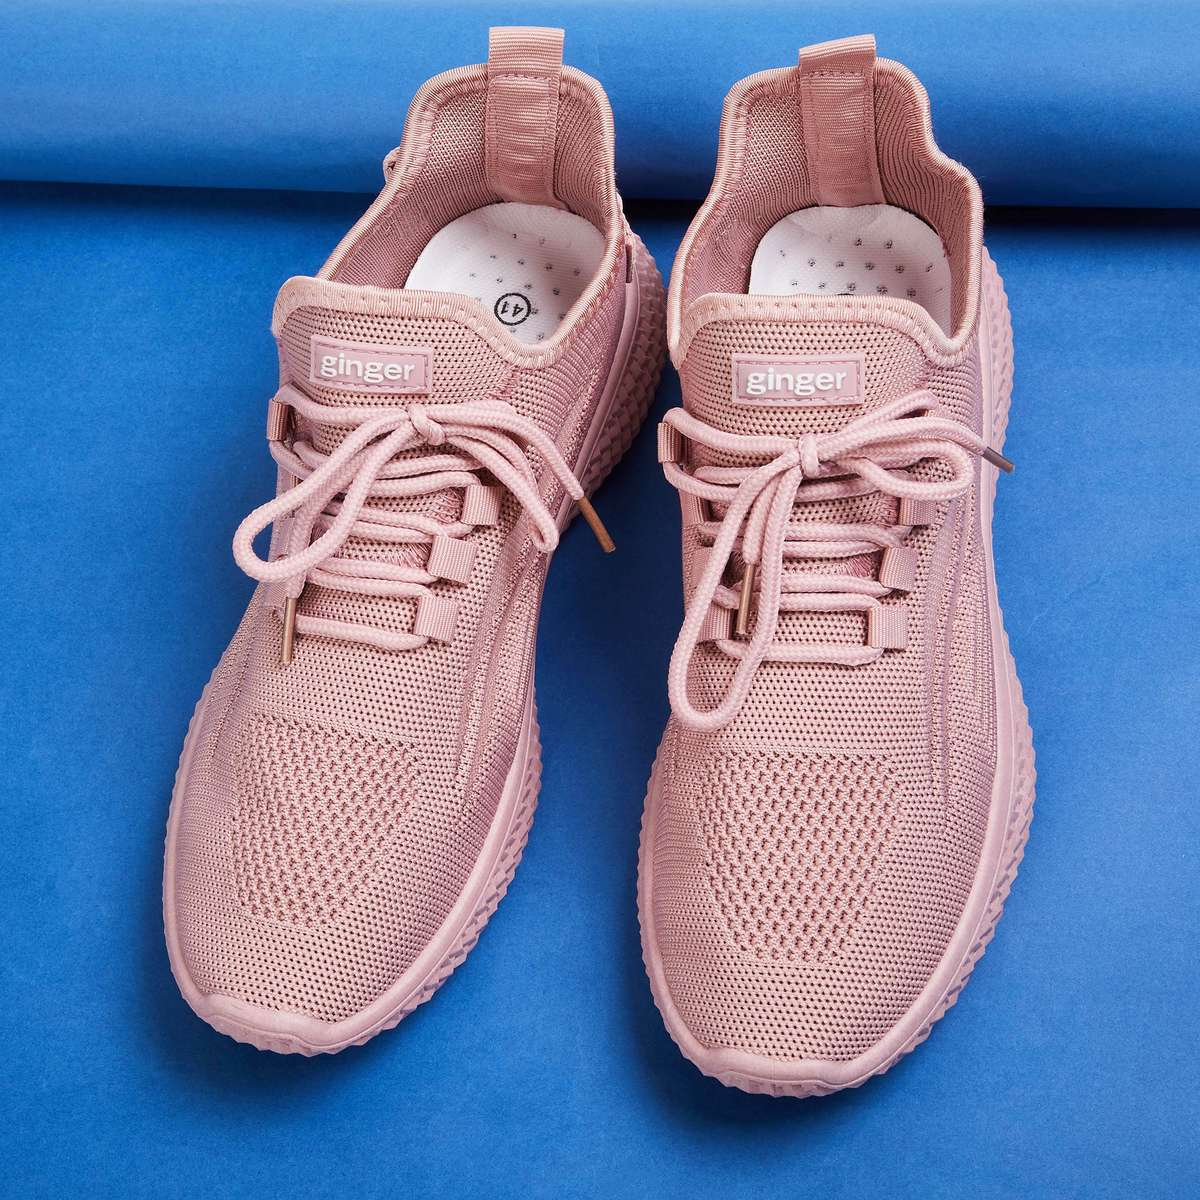 3.GINGER Women Textured Sports Shoes